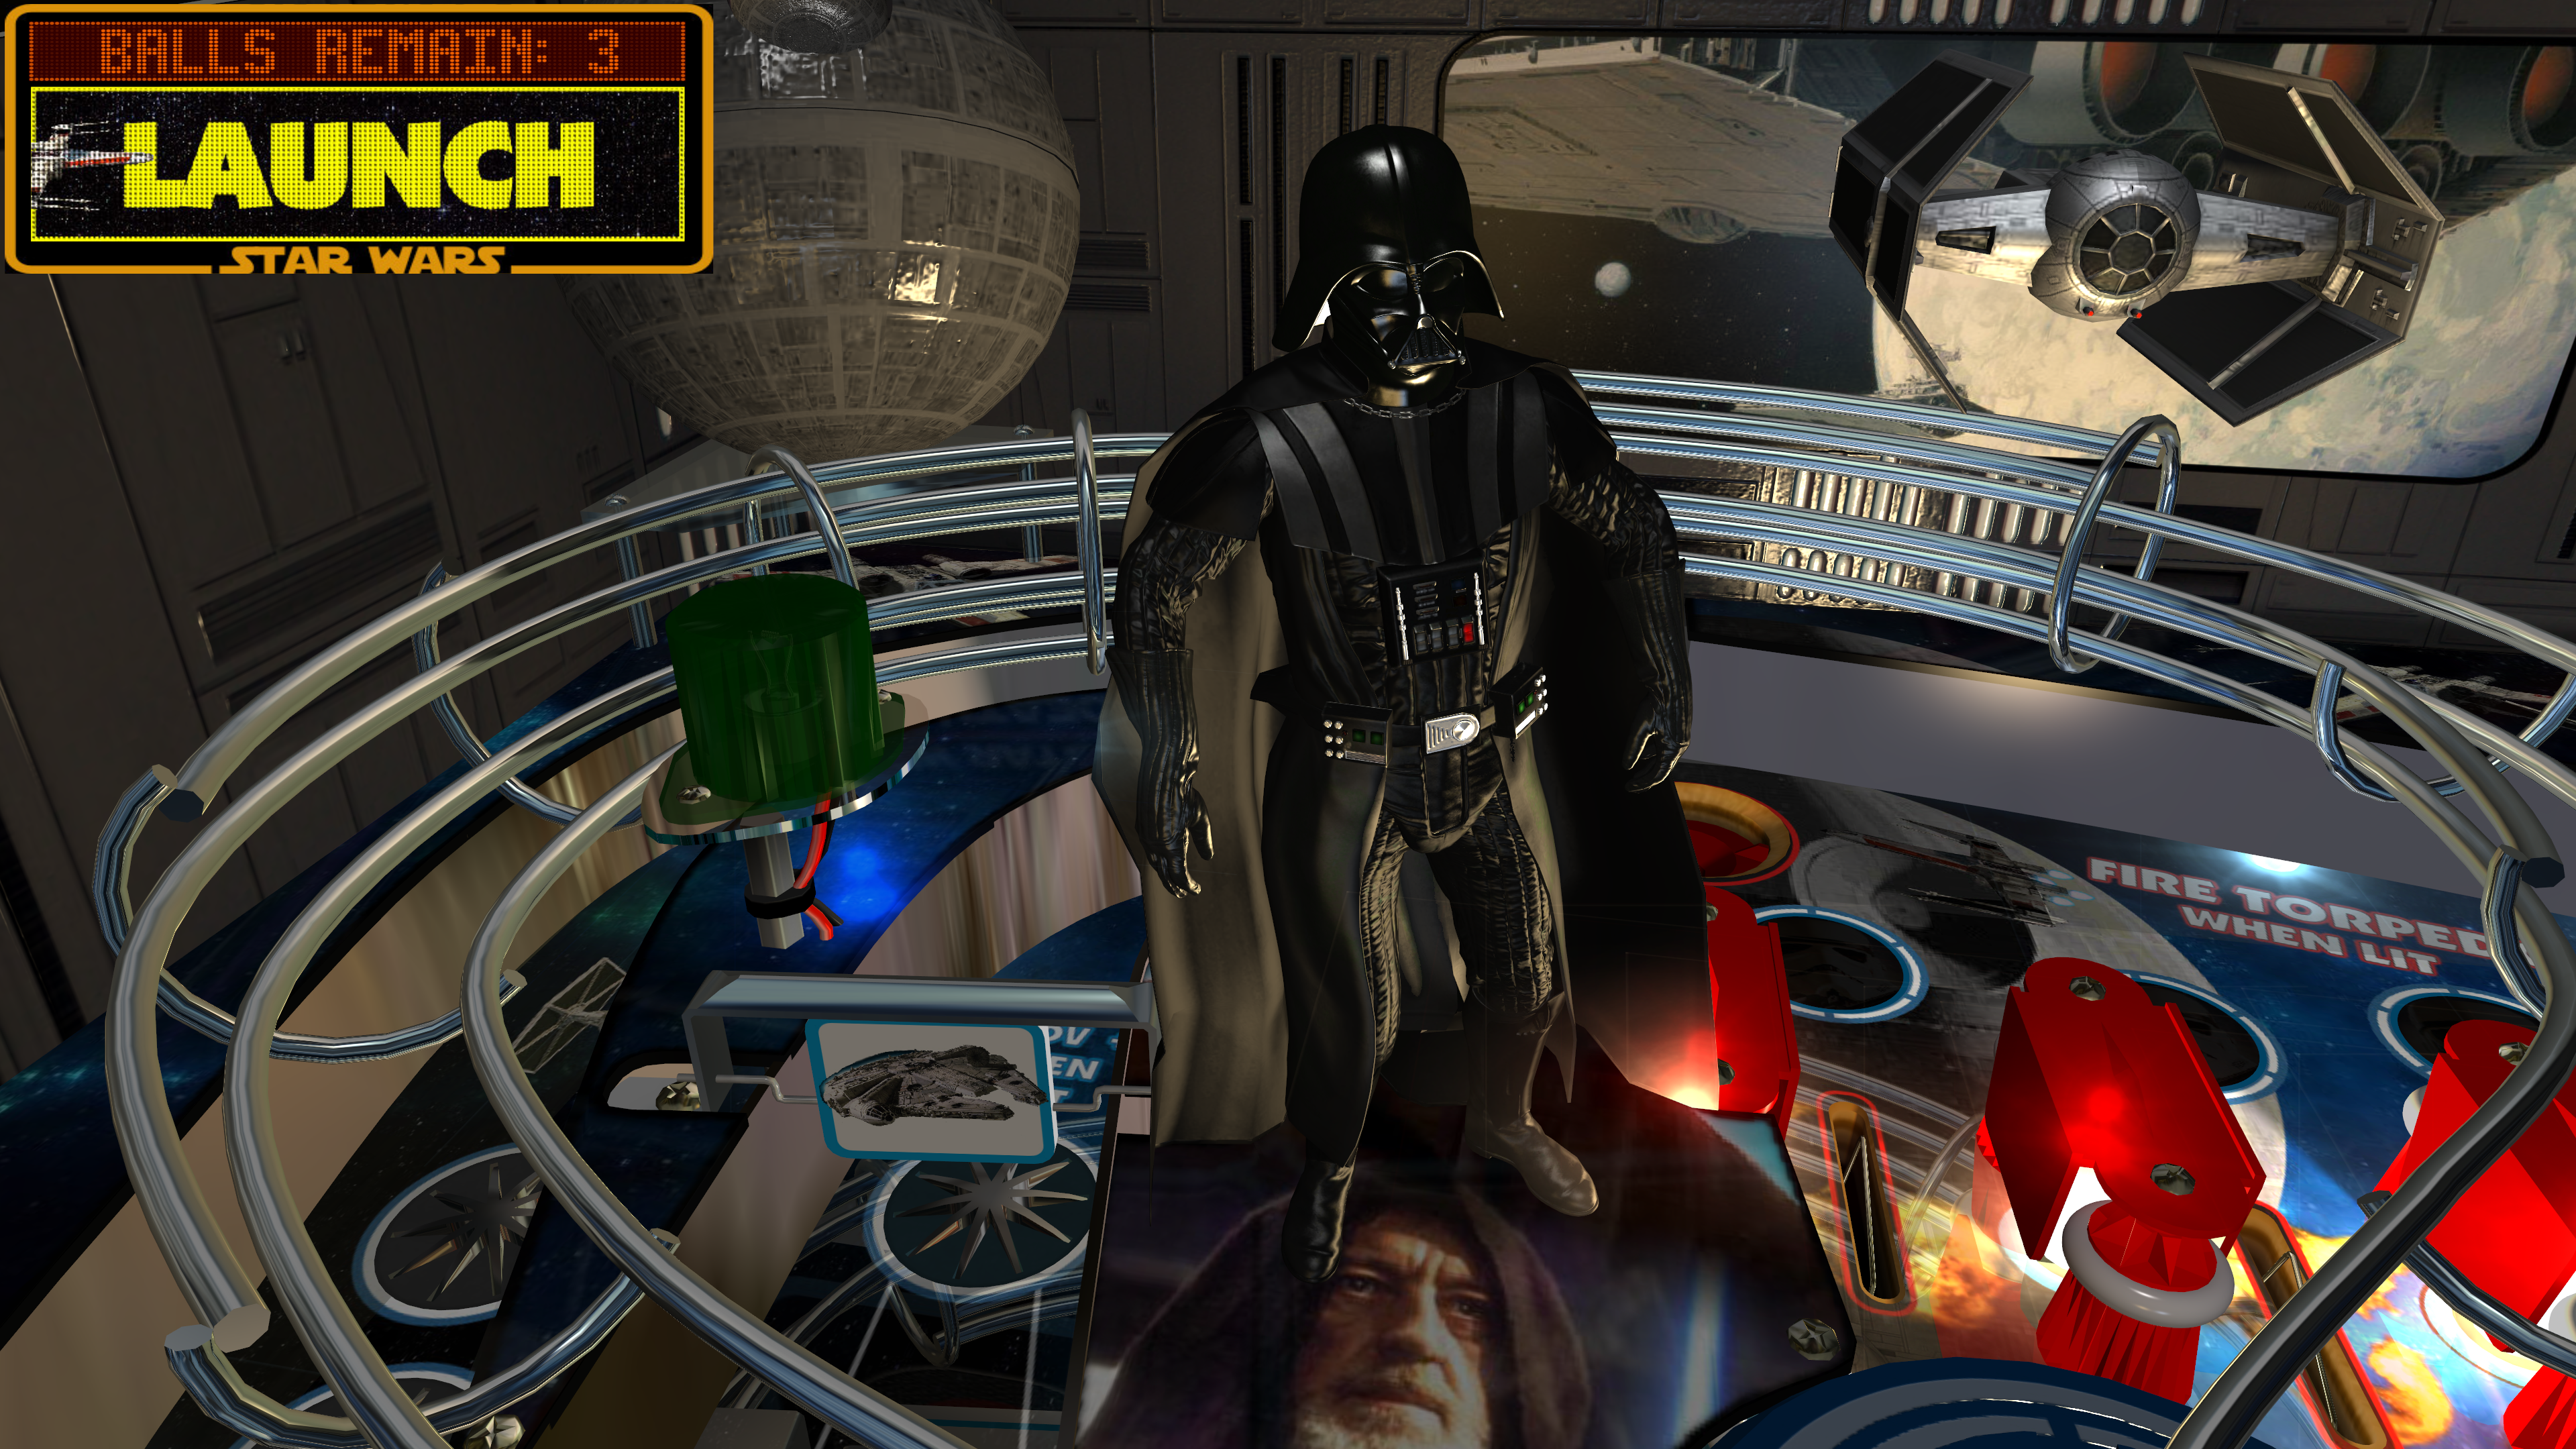 Star Wars DSA ULTIMATE Pro 1.06 - PinEvent - WIP - Vader New2.png